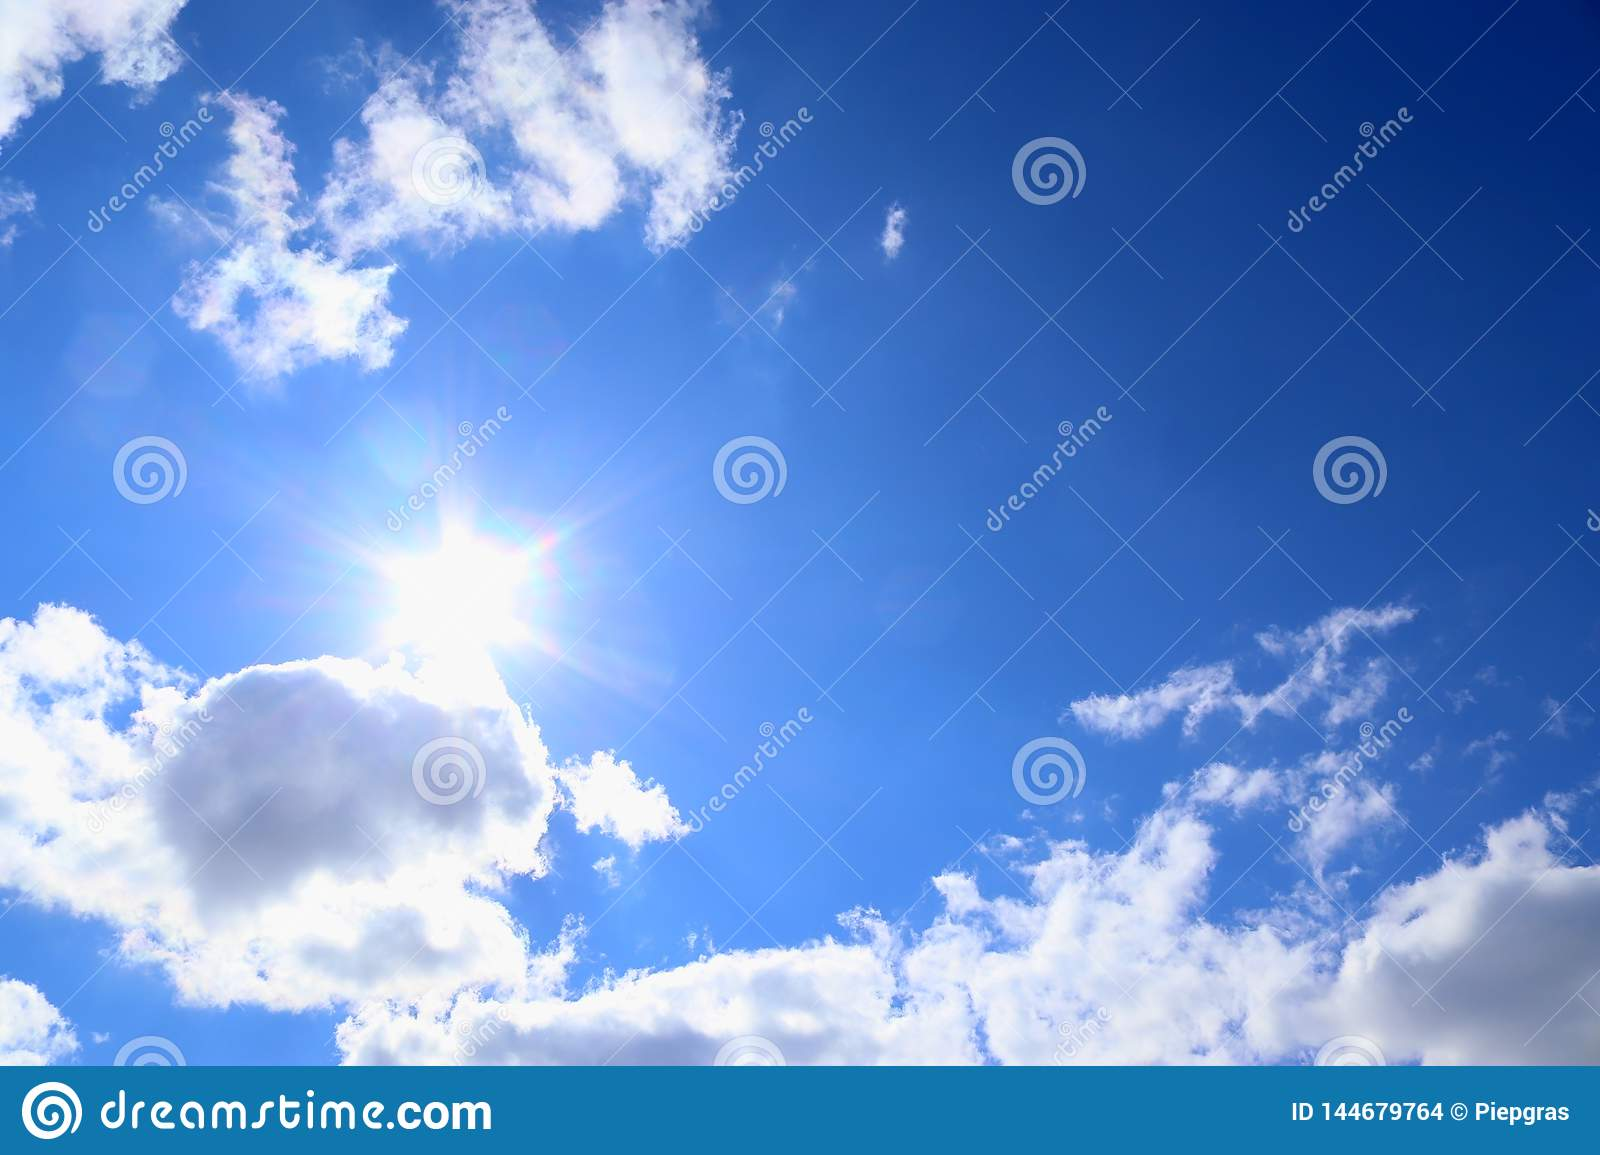 Beautiful fluffy white cumulus and cirrus clouds on a deep blue sky